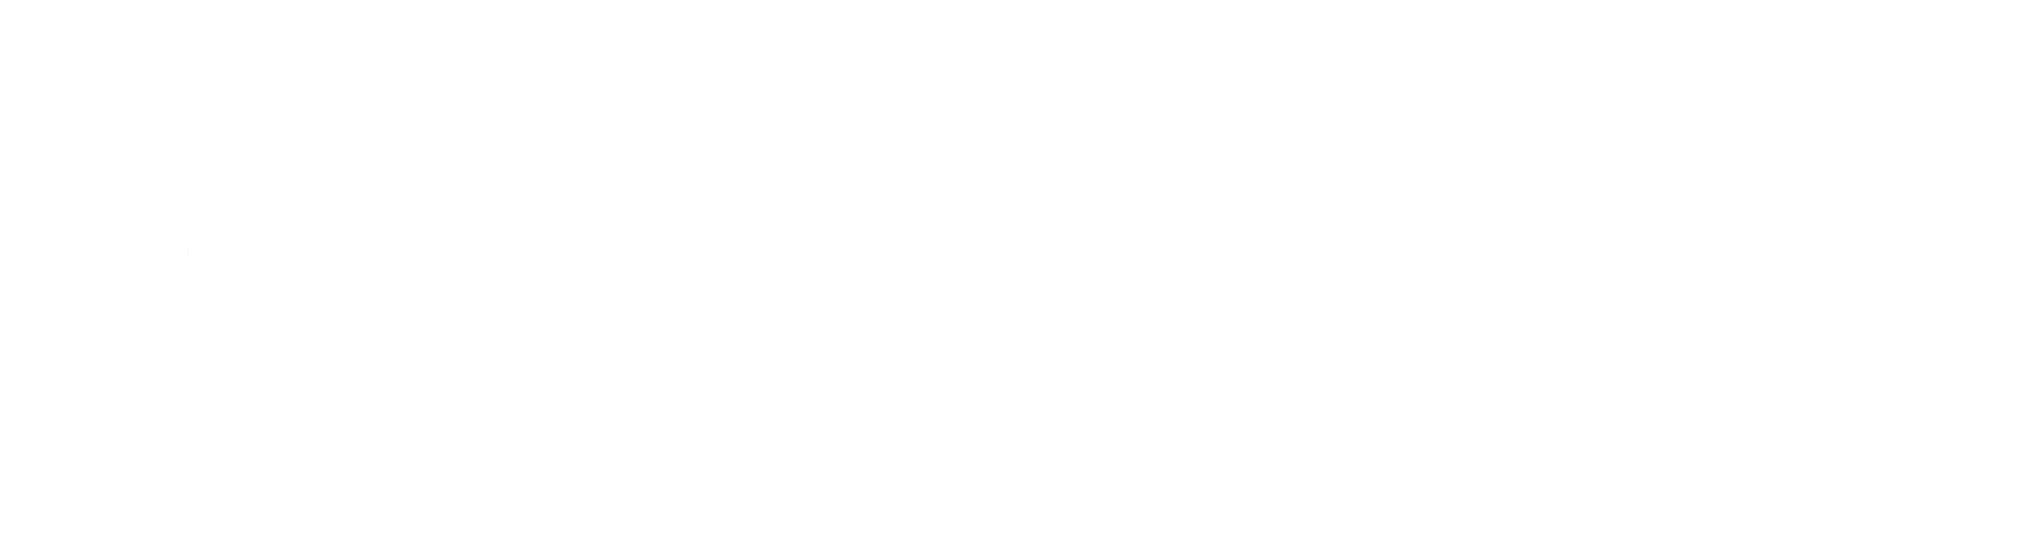 Training Courses For The Construction And Railway | BRIN SOLUTIONS